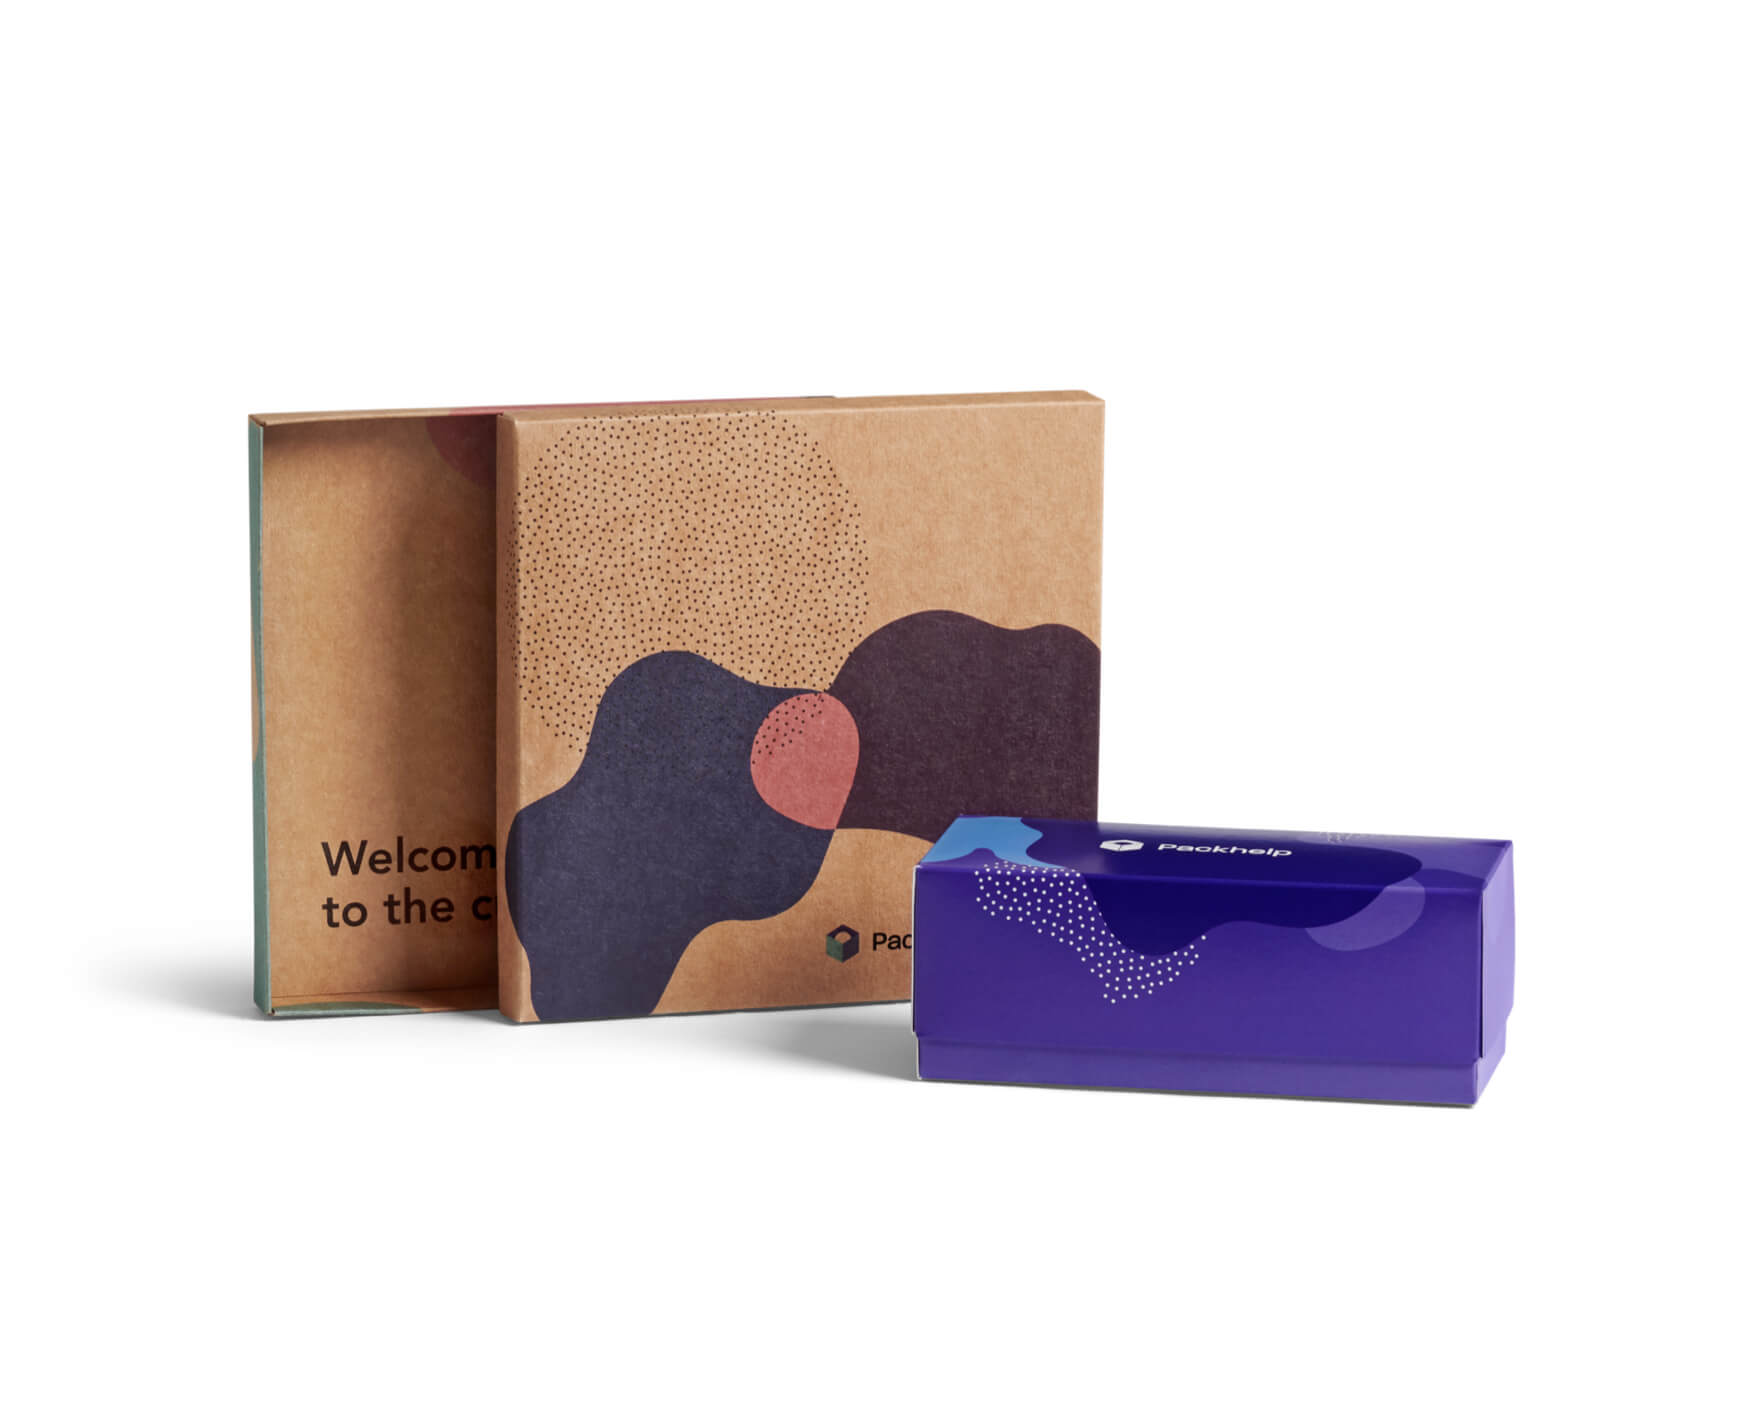 Custom Boxes with lid, printed Two-piece Product Boxes. Recyclable materials